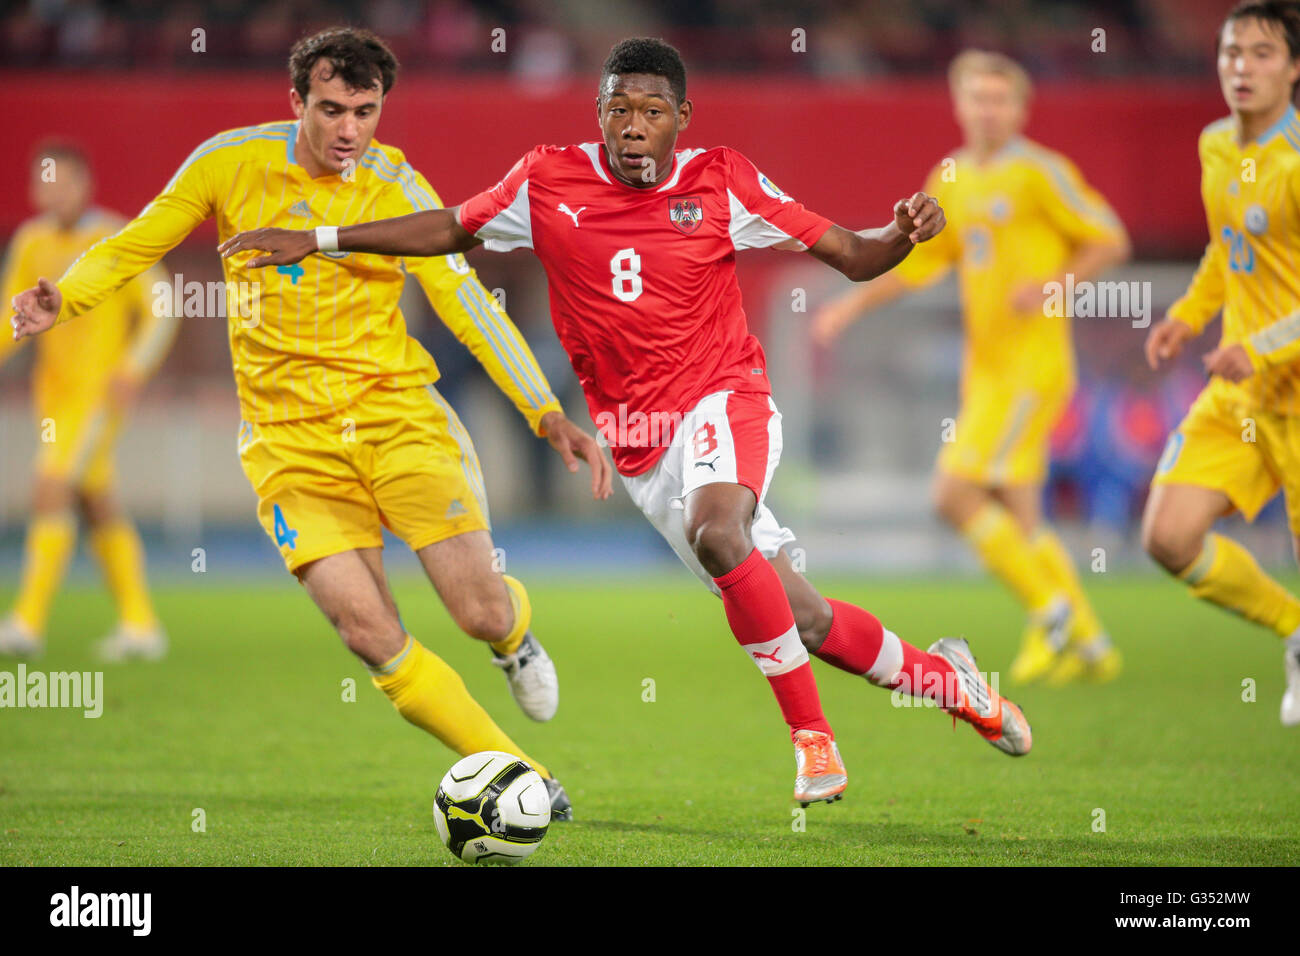 David Alaba, #8 Austria, and Muktar Muktarov, #4 Kazakhstan, fight for the  ball during the WC qualifier soccer game on October